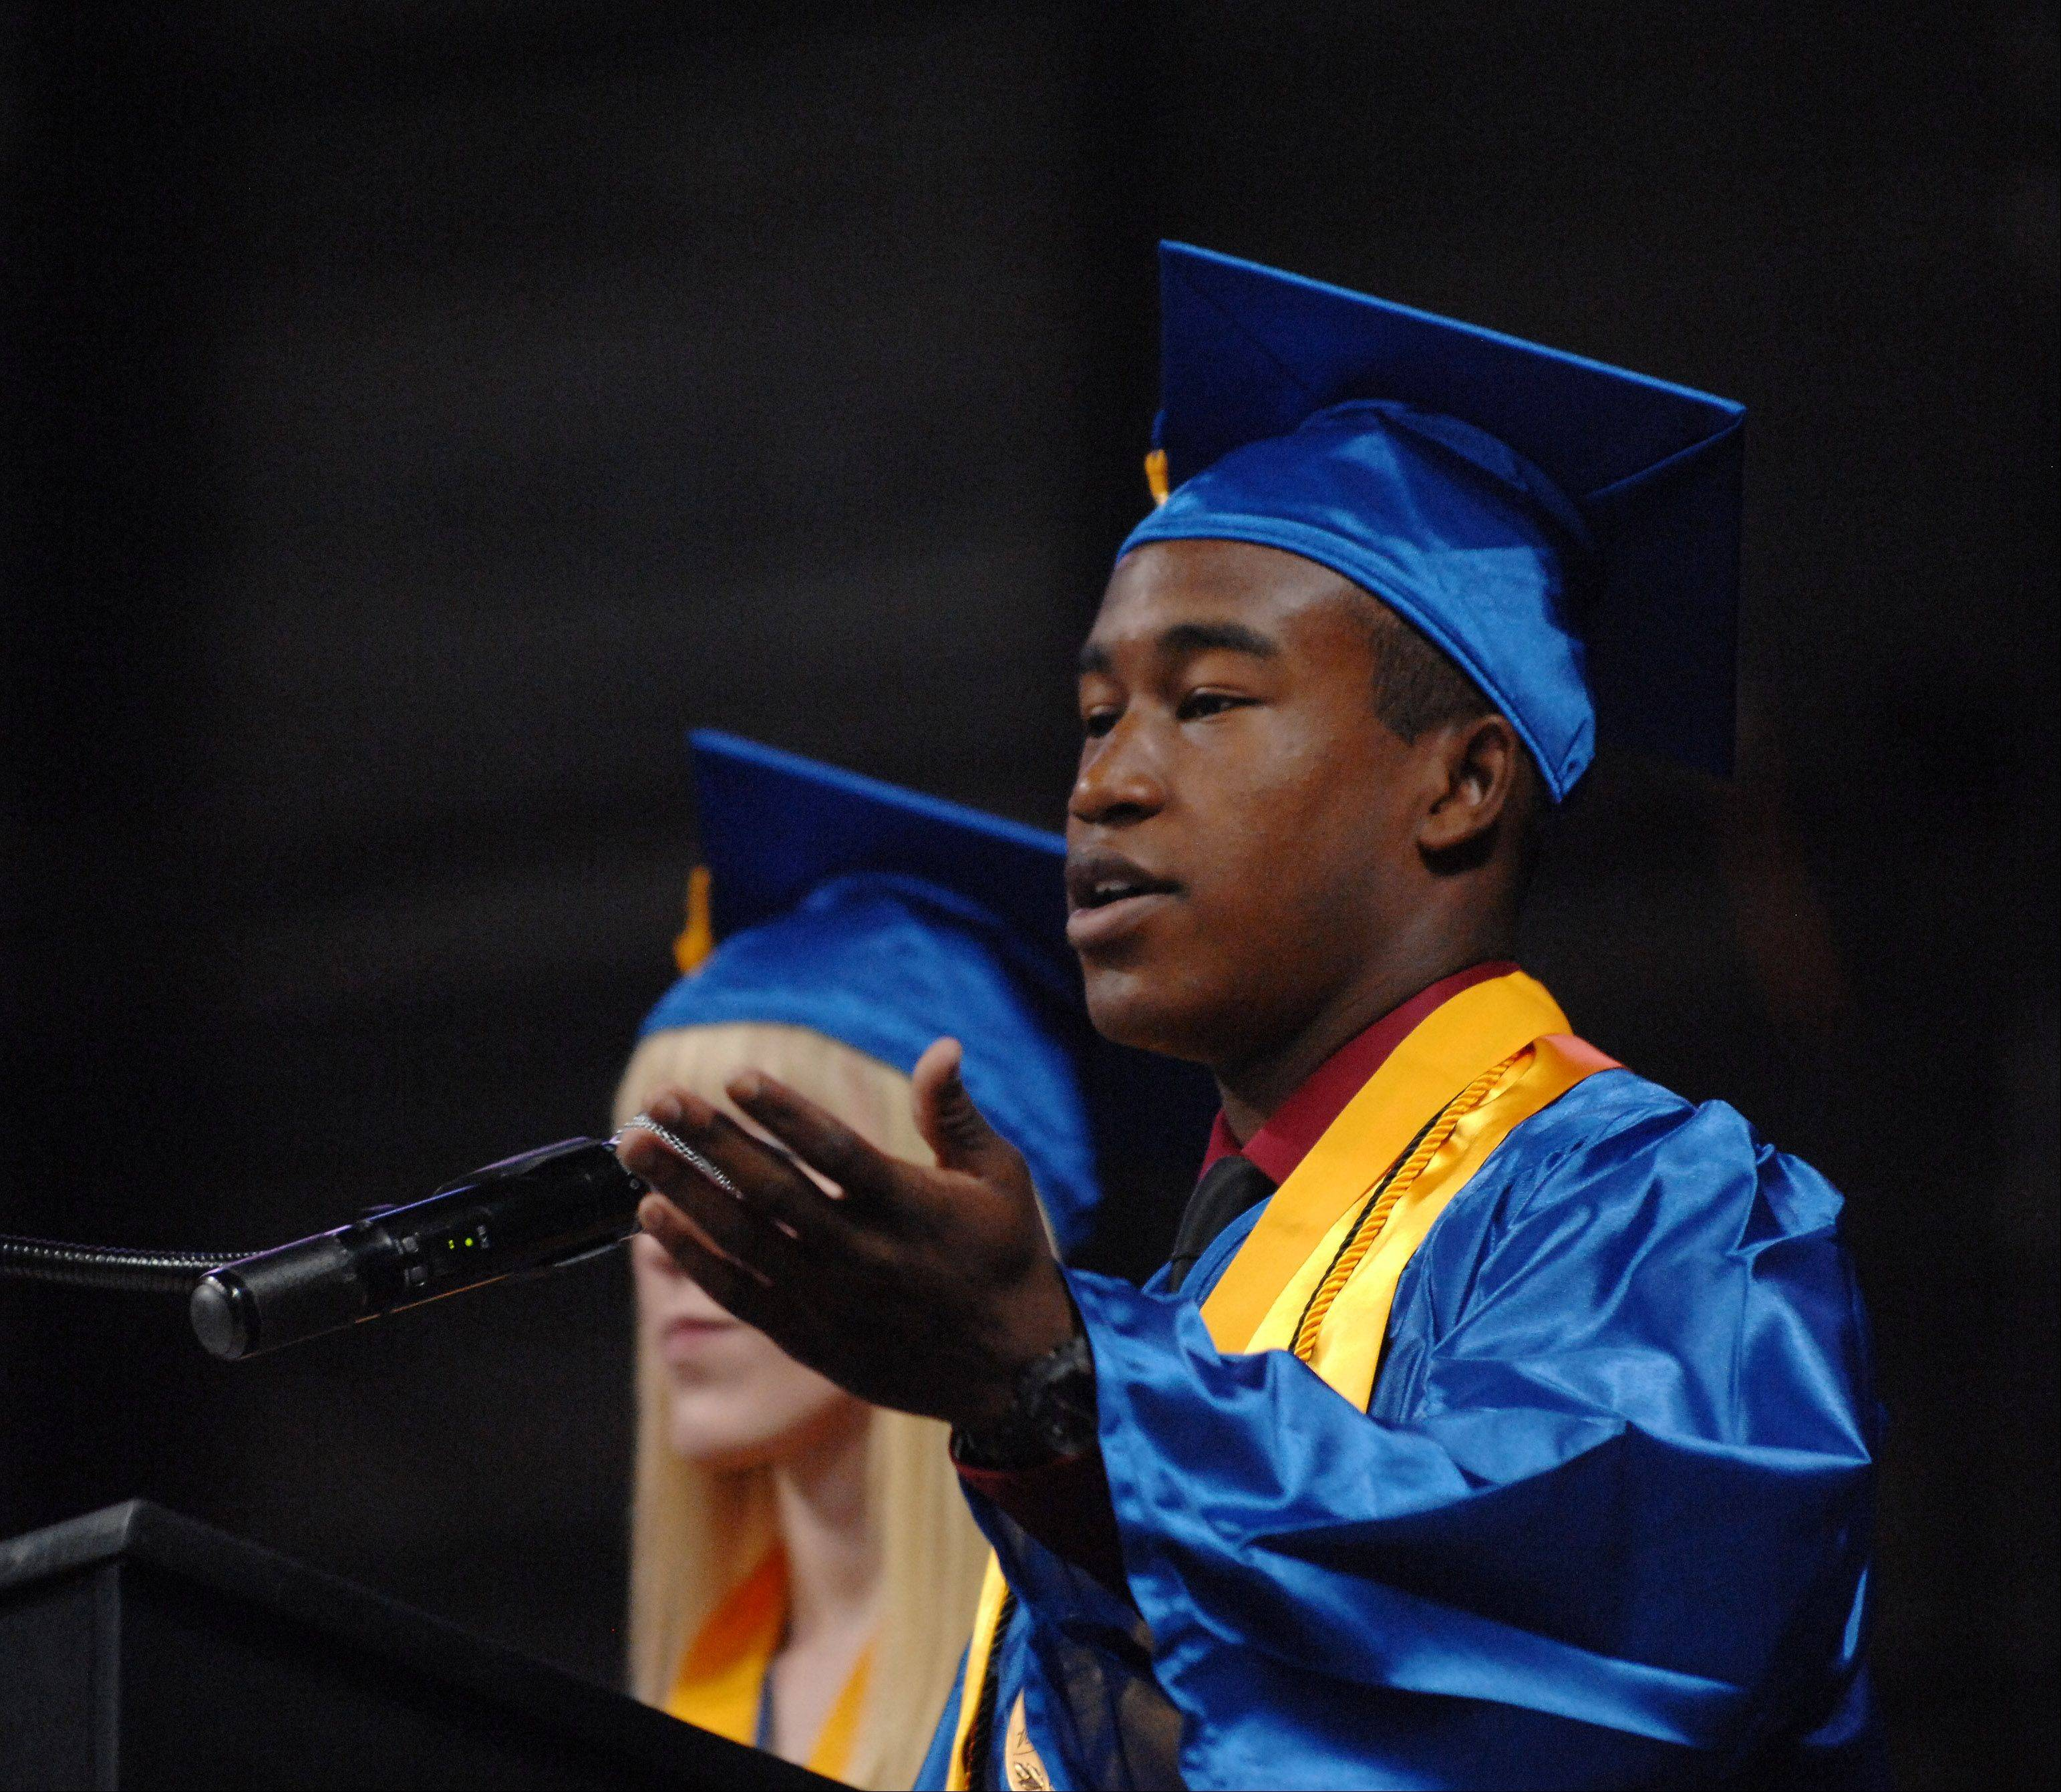 Images from the Dundee-Crown High School graduation ceremony Saturday, May 18, 2013 at the Sears Centre in Hoffman Estates.